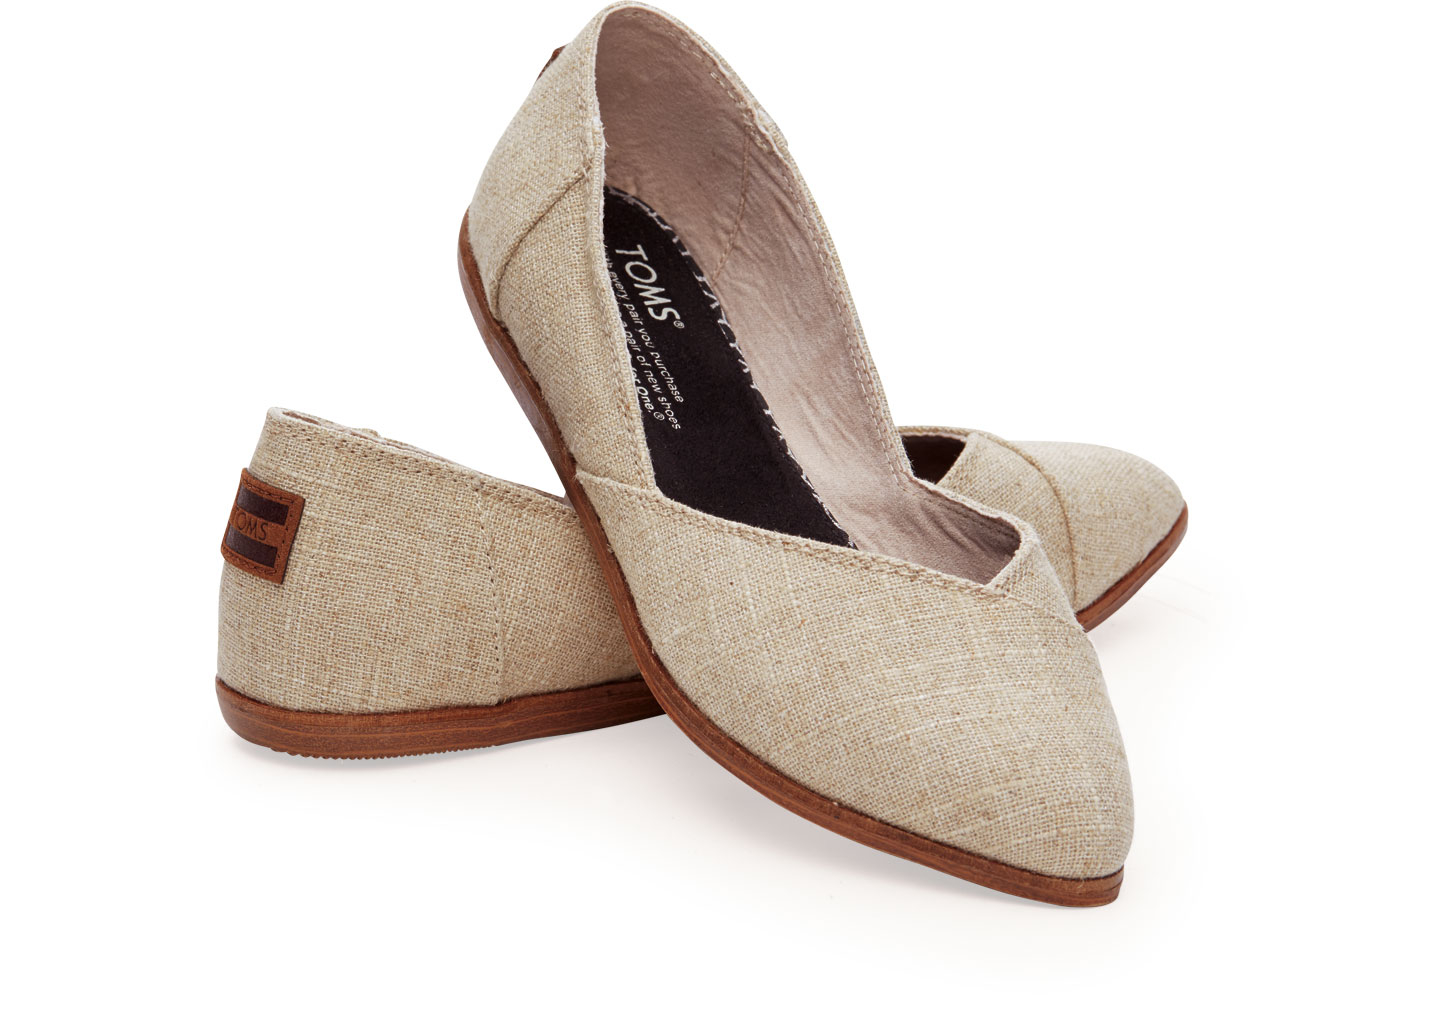 Toms Natural Products Australia